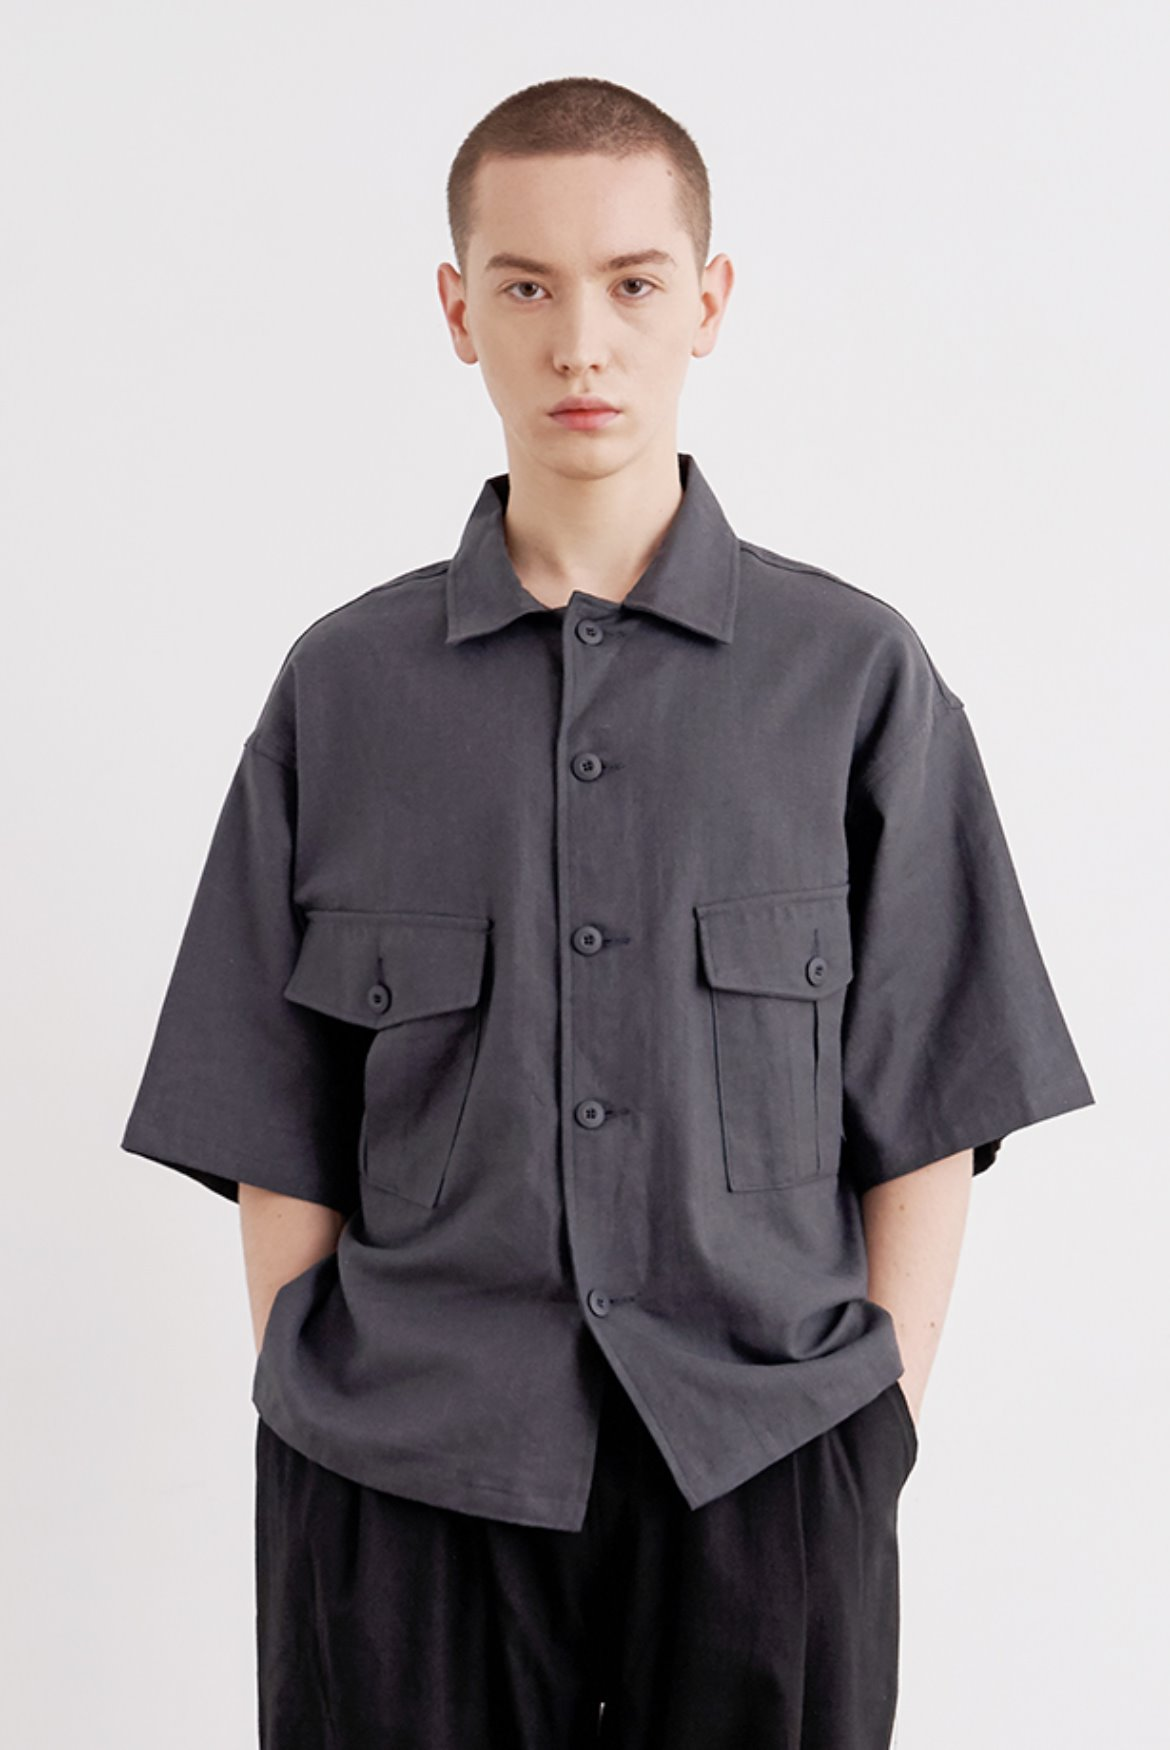 HBT Linen BDU Short Jacket [Charcoal]